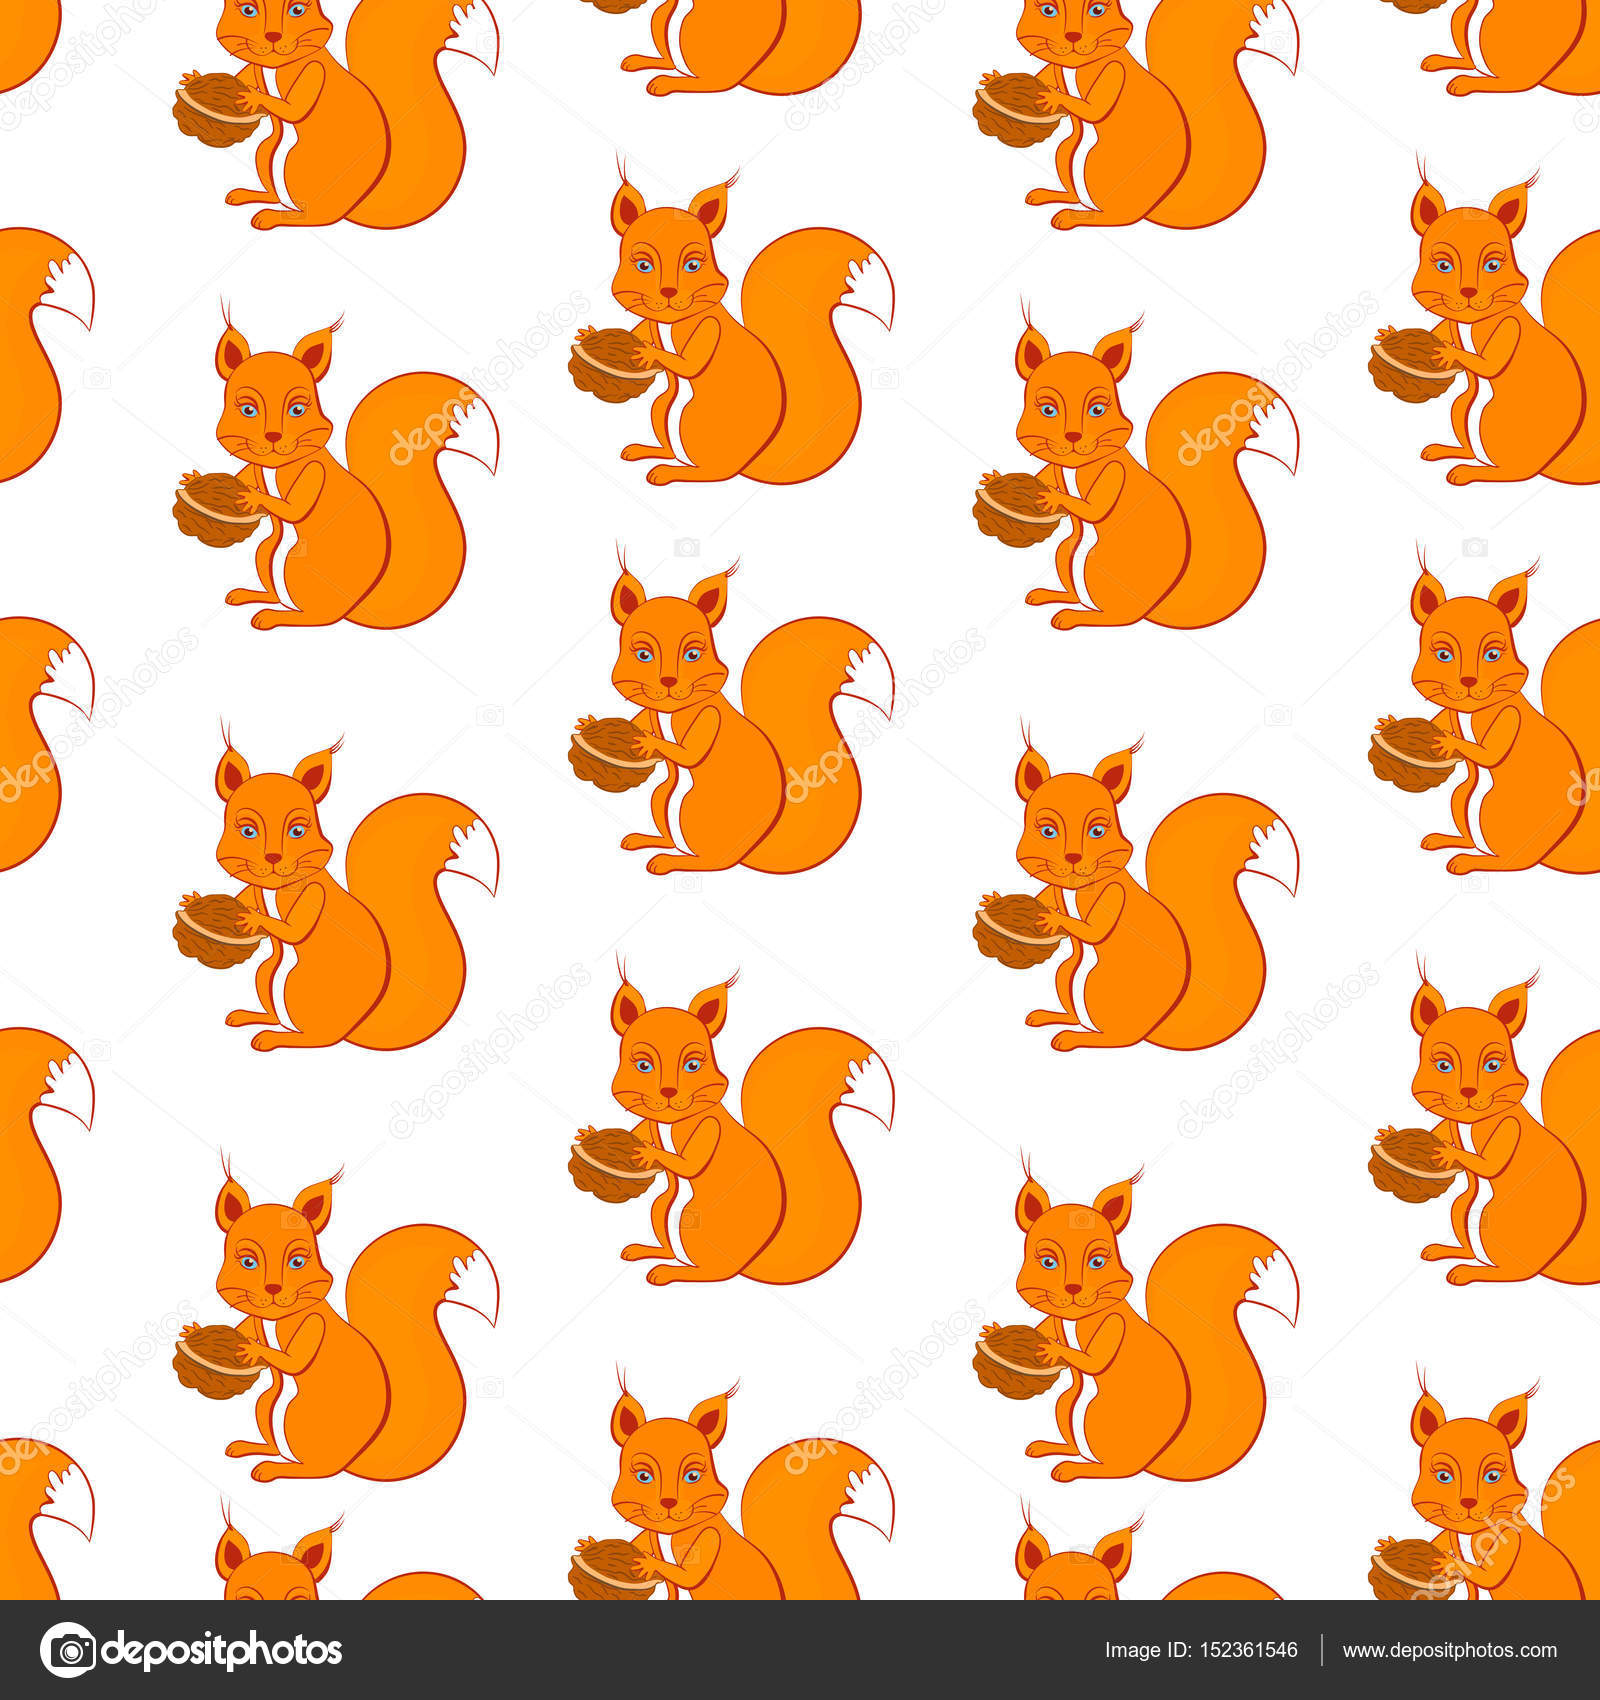 Cute Cartoon Squirrel With Walnut In Paws Sitting On Colorful Background Seamless Vector Pattern Set